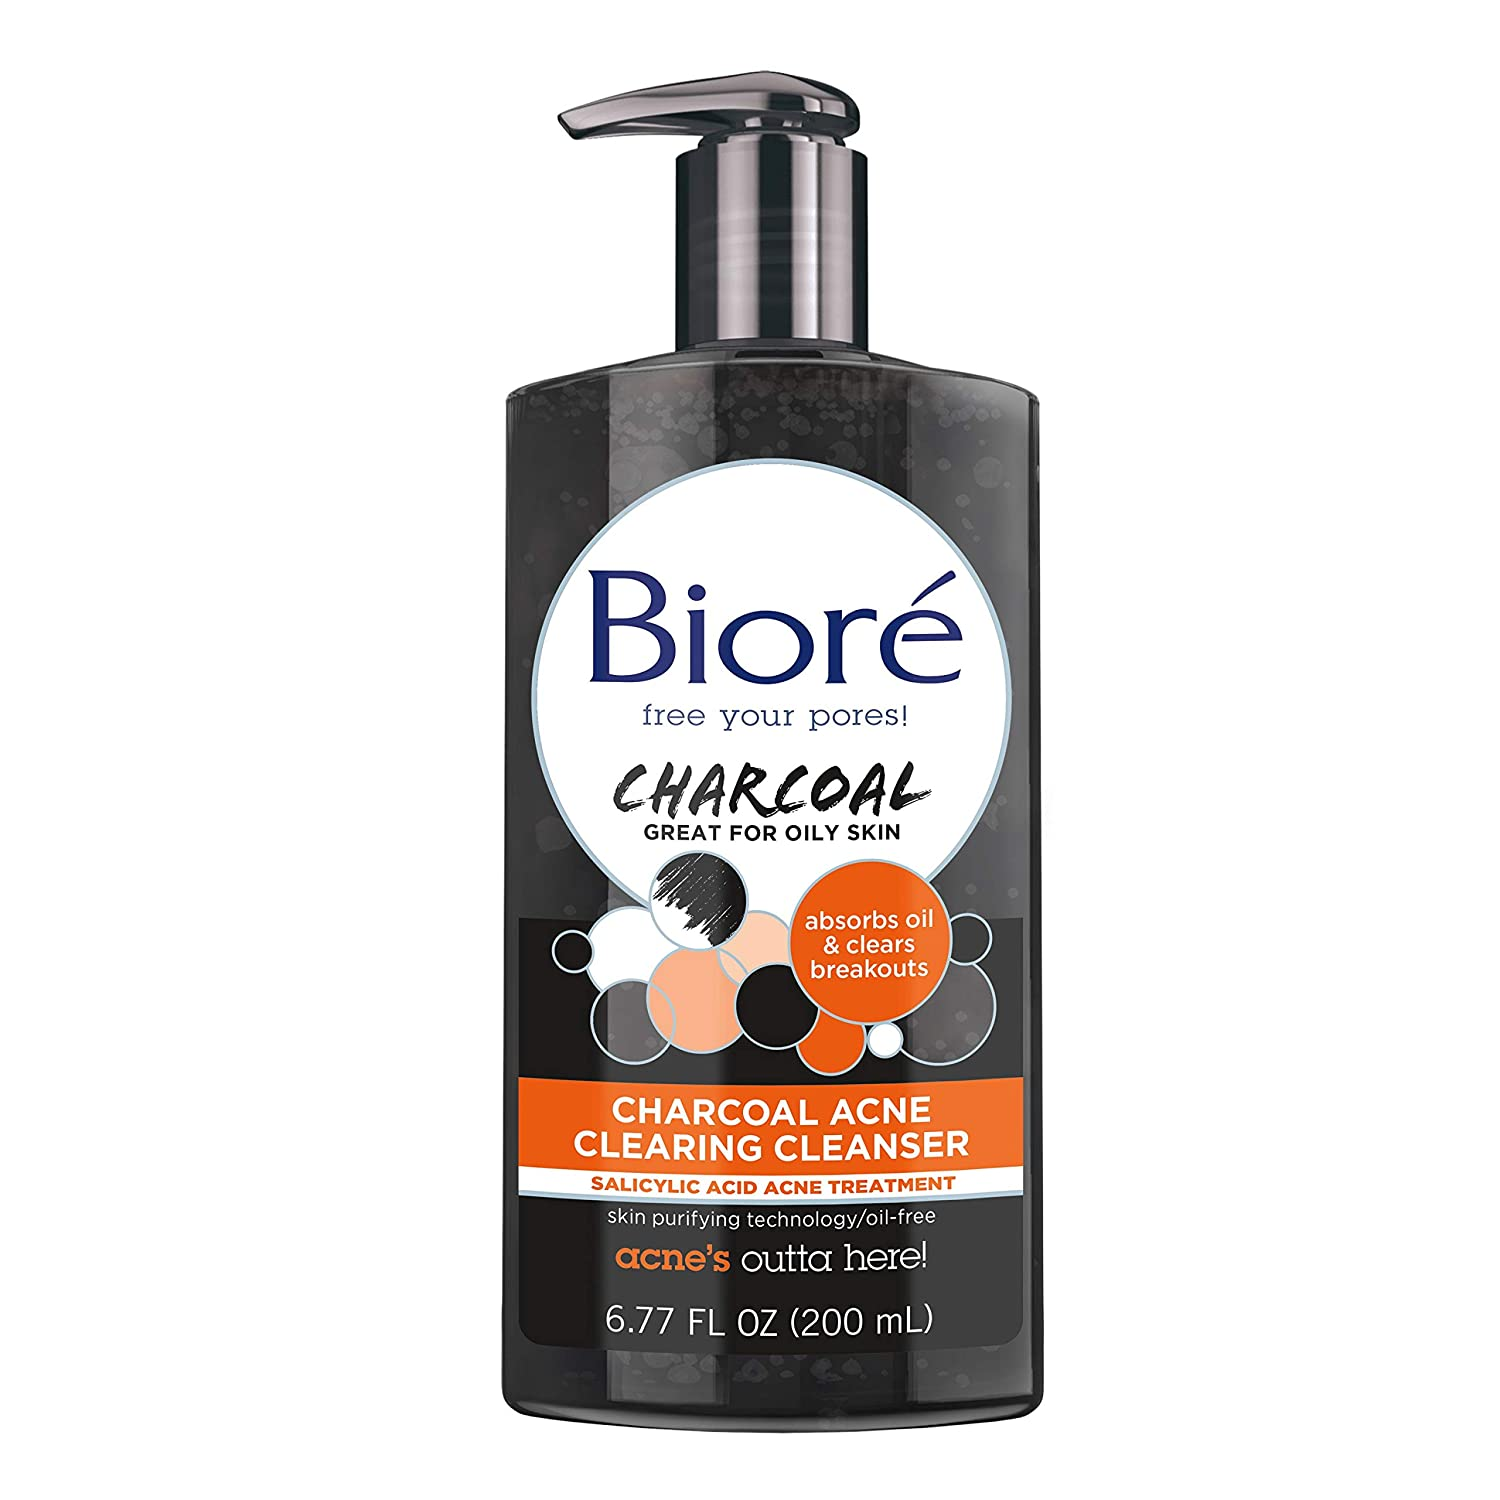 Bioré Charcoal Acne Clearing Cleanser for Oily and Acne Prone skin, 6.77 Ounces, Salicylic Acid Acne Treatment, Daily Face Wash, Dermatologist Tested